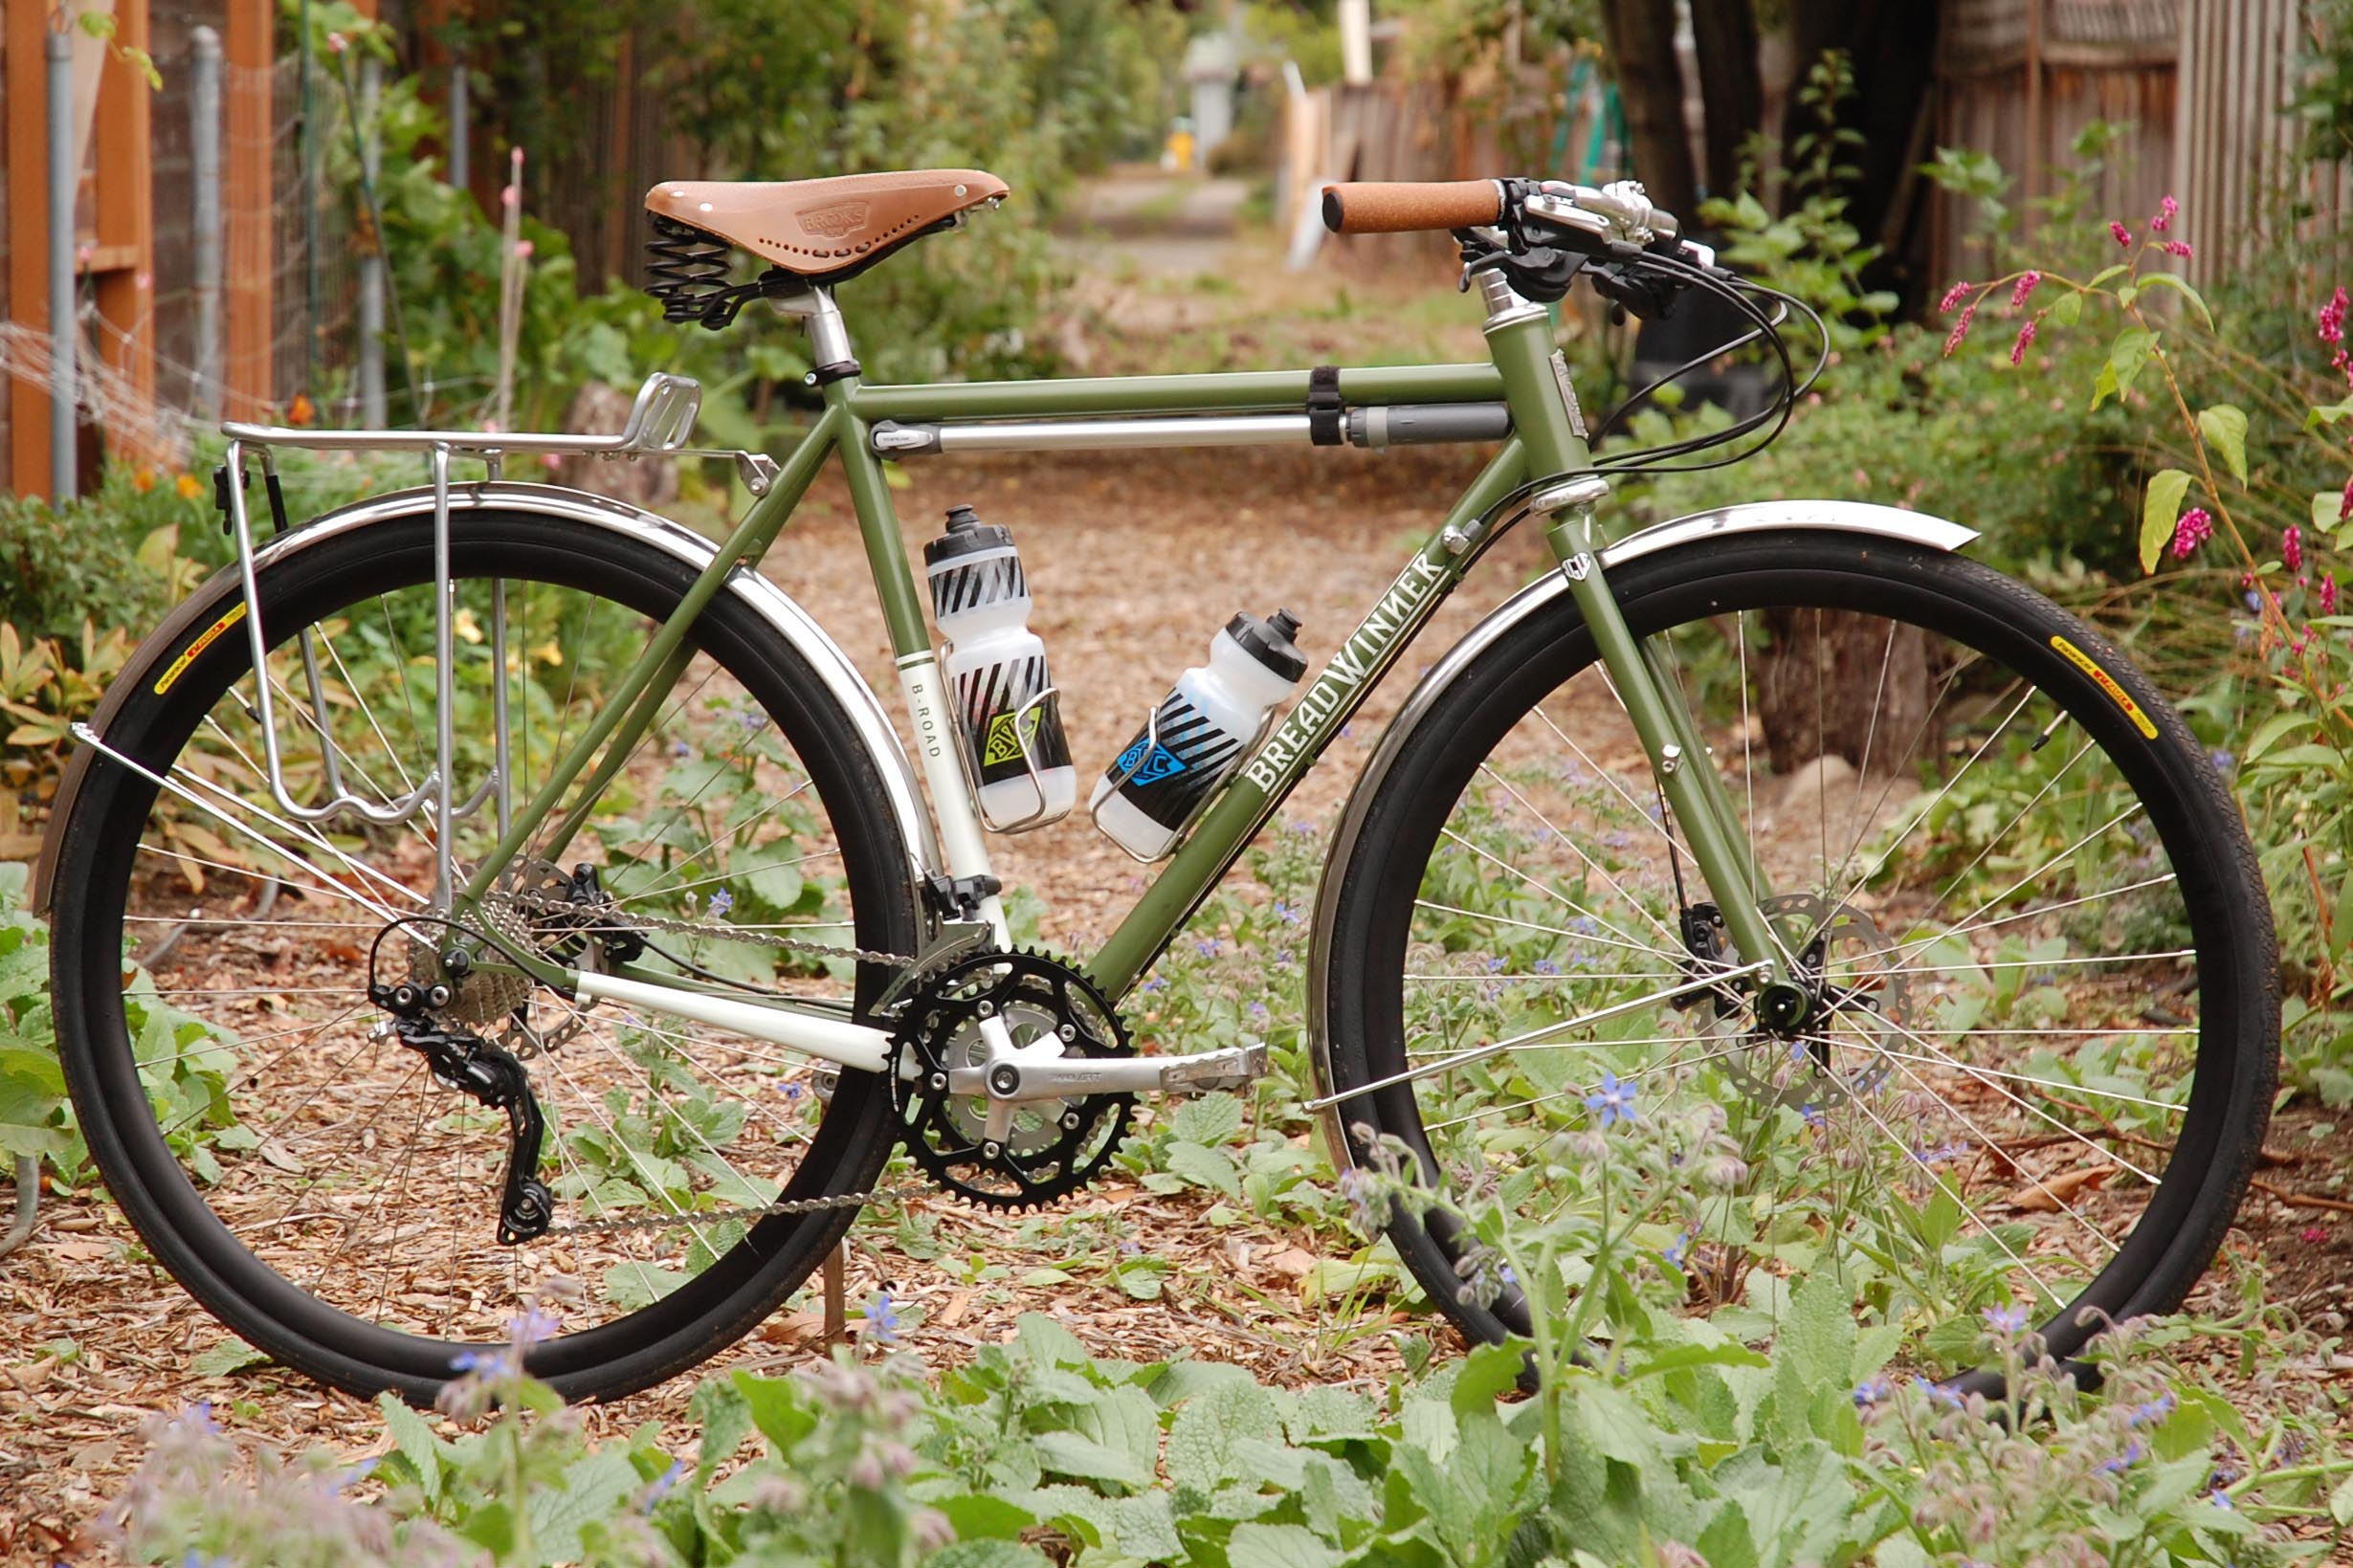 breadwinner_cycles_custom_steel_bikes_portland_oregon_G-Road_gravel_bike-07